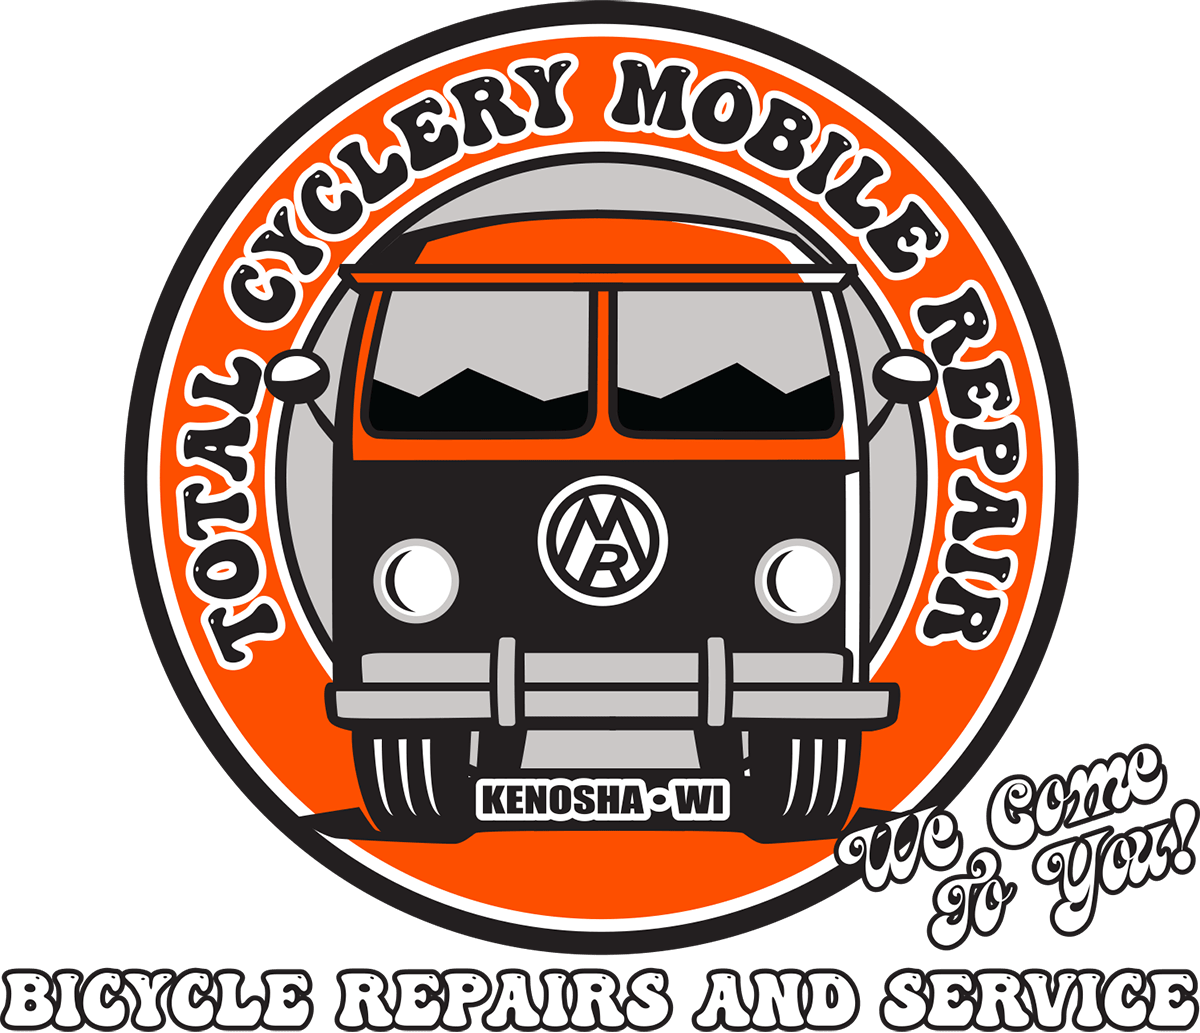 Total Cyclery Mobile Repair - Bicycle Repairs and Service - We come to you!